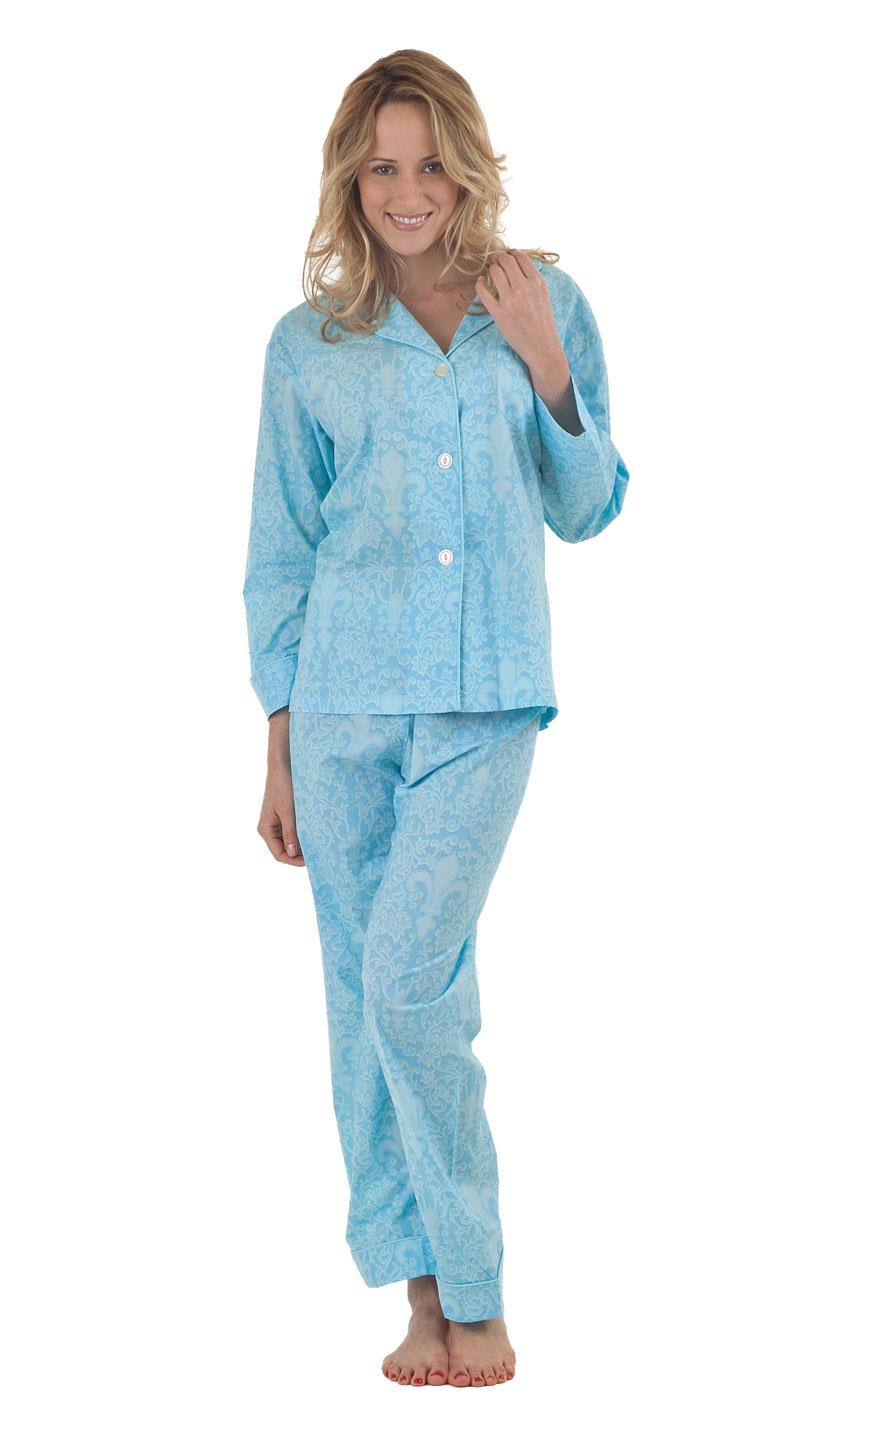 Winter Sleepwear Pajama Shirt For Women Night Dress 7